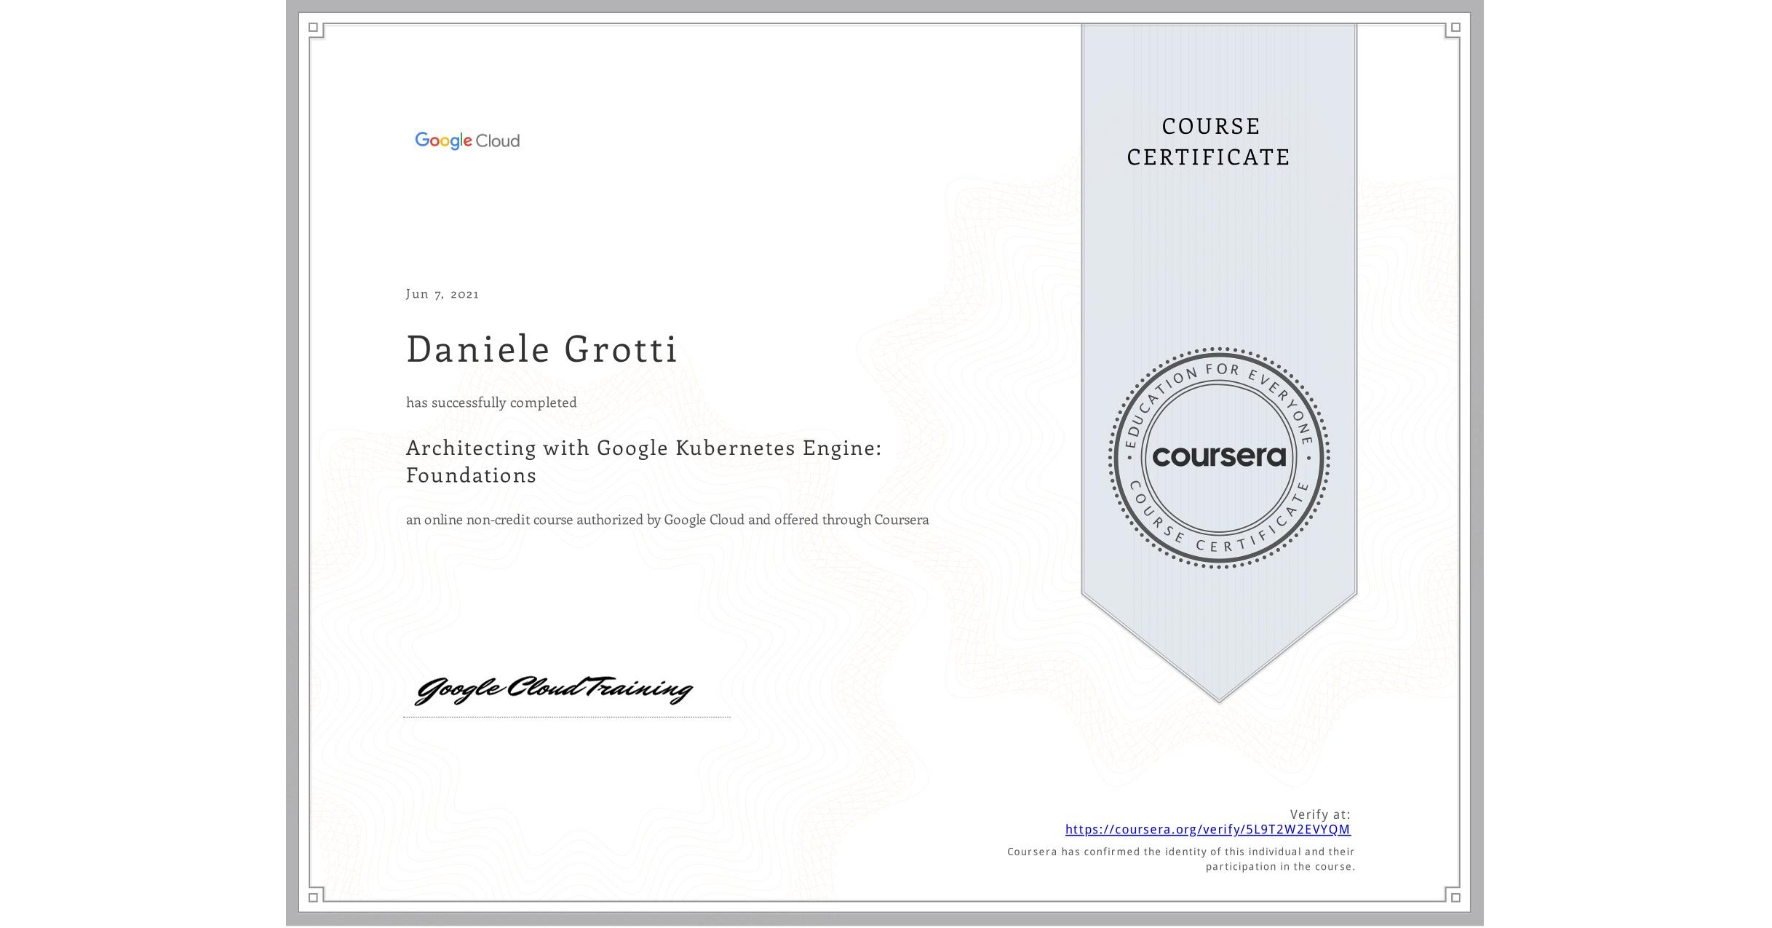 View certificate for Daniele Grotti, Architecting with Google Kubernetes Engine: Foundations, an online non-credit course authorized by Google Cloud and offered through Coursera